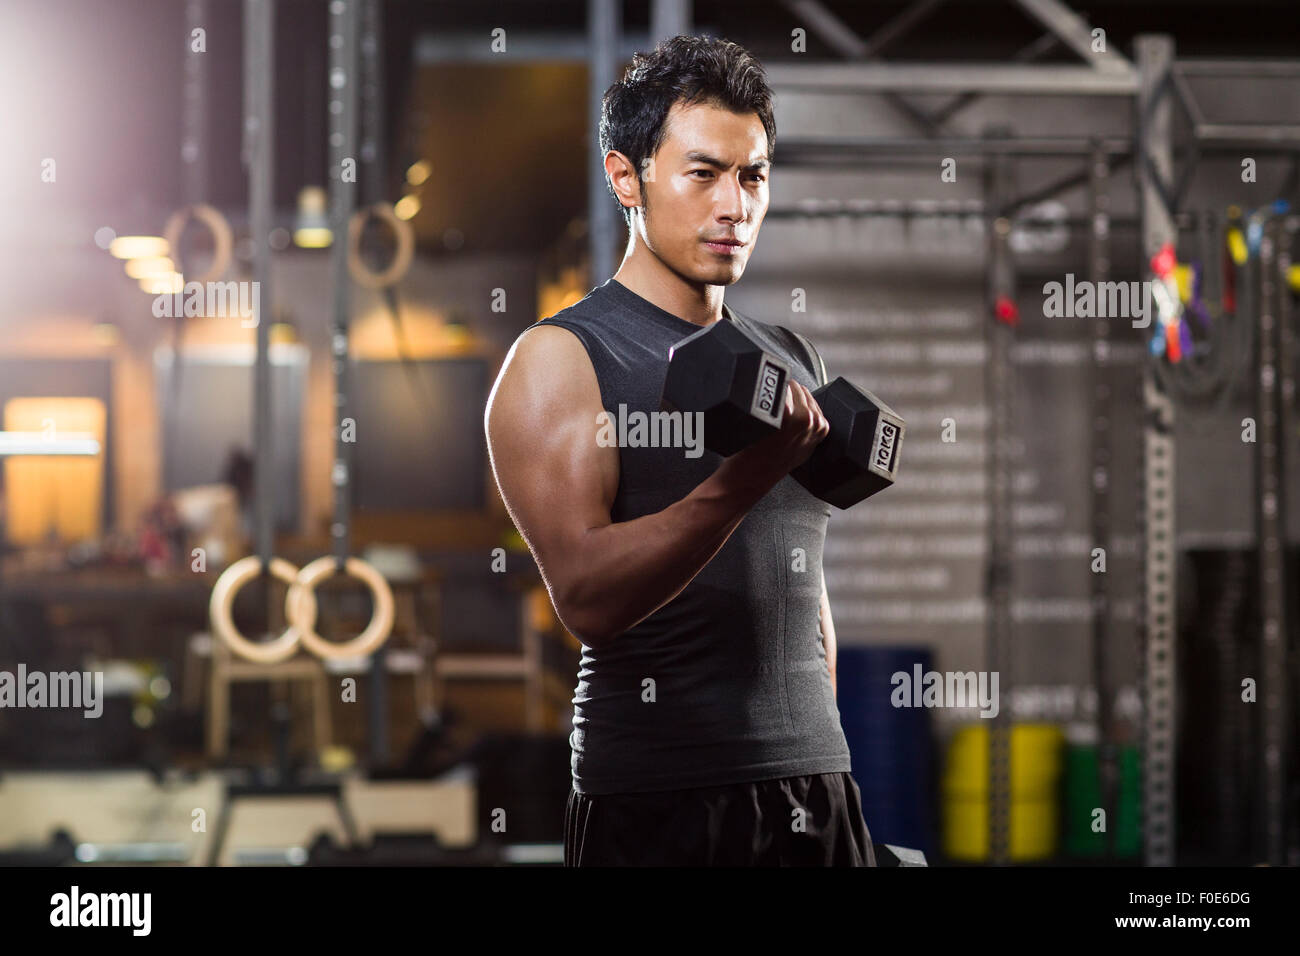 Young man lifting weights at gym Photo Stock